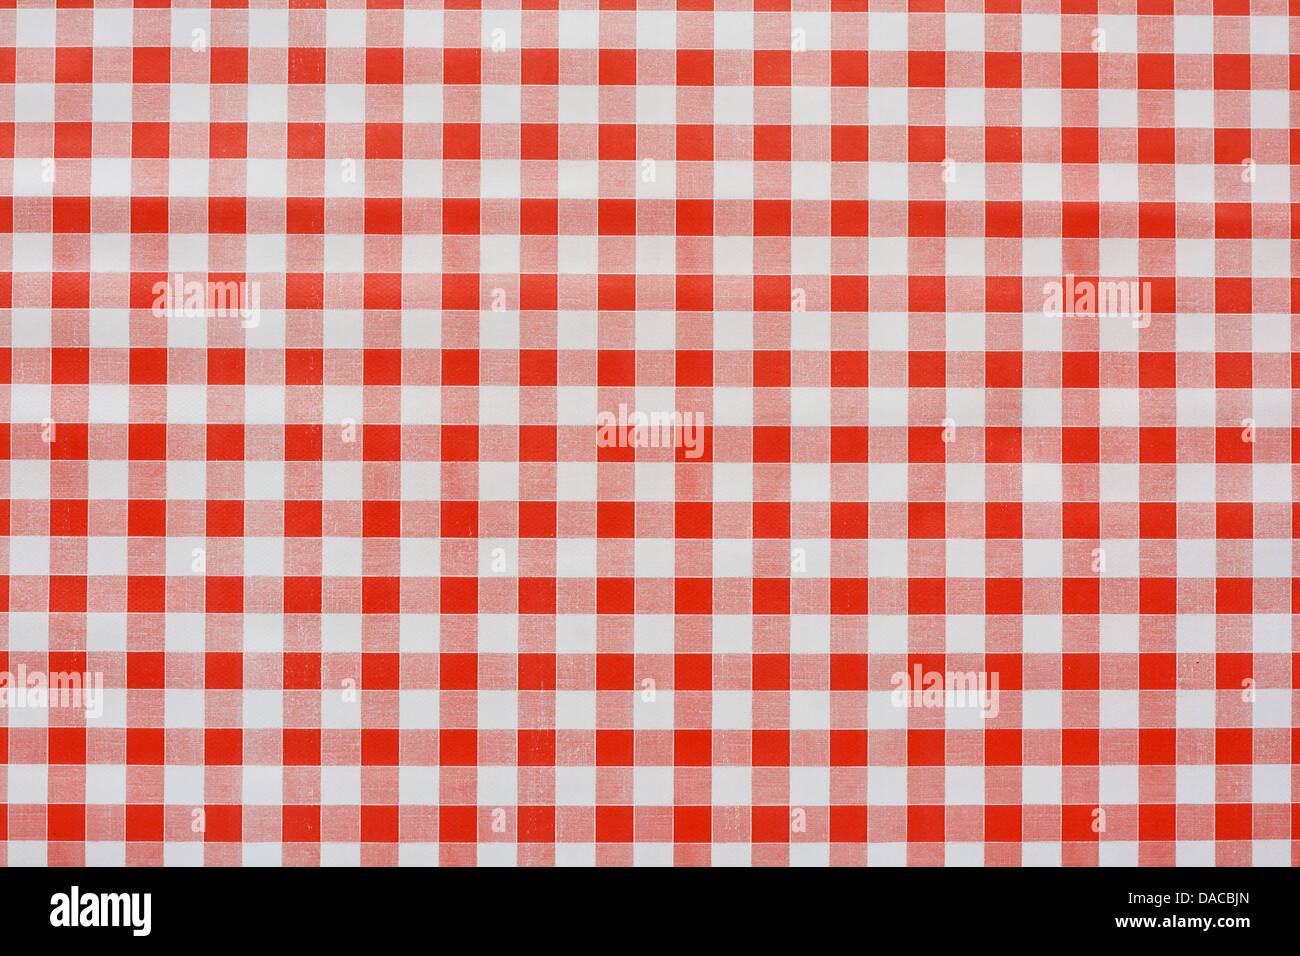 Red gingham tablecloth often found in diners and cafes a popular traditional covering for tables where food is consumed - Stock Image